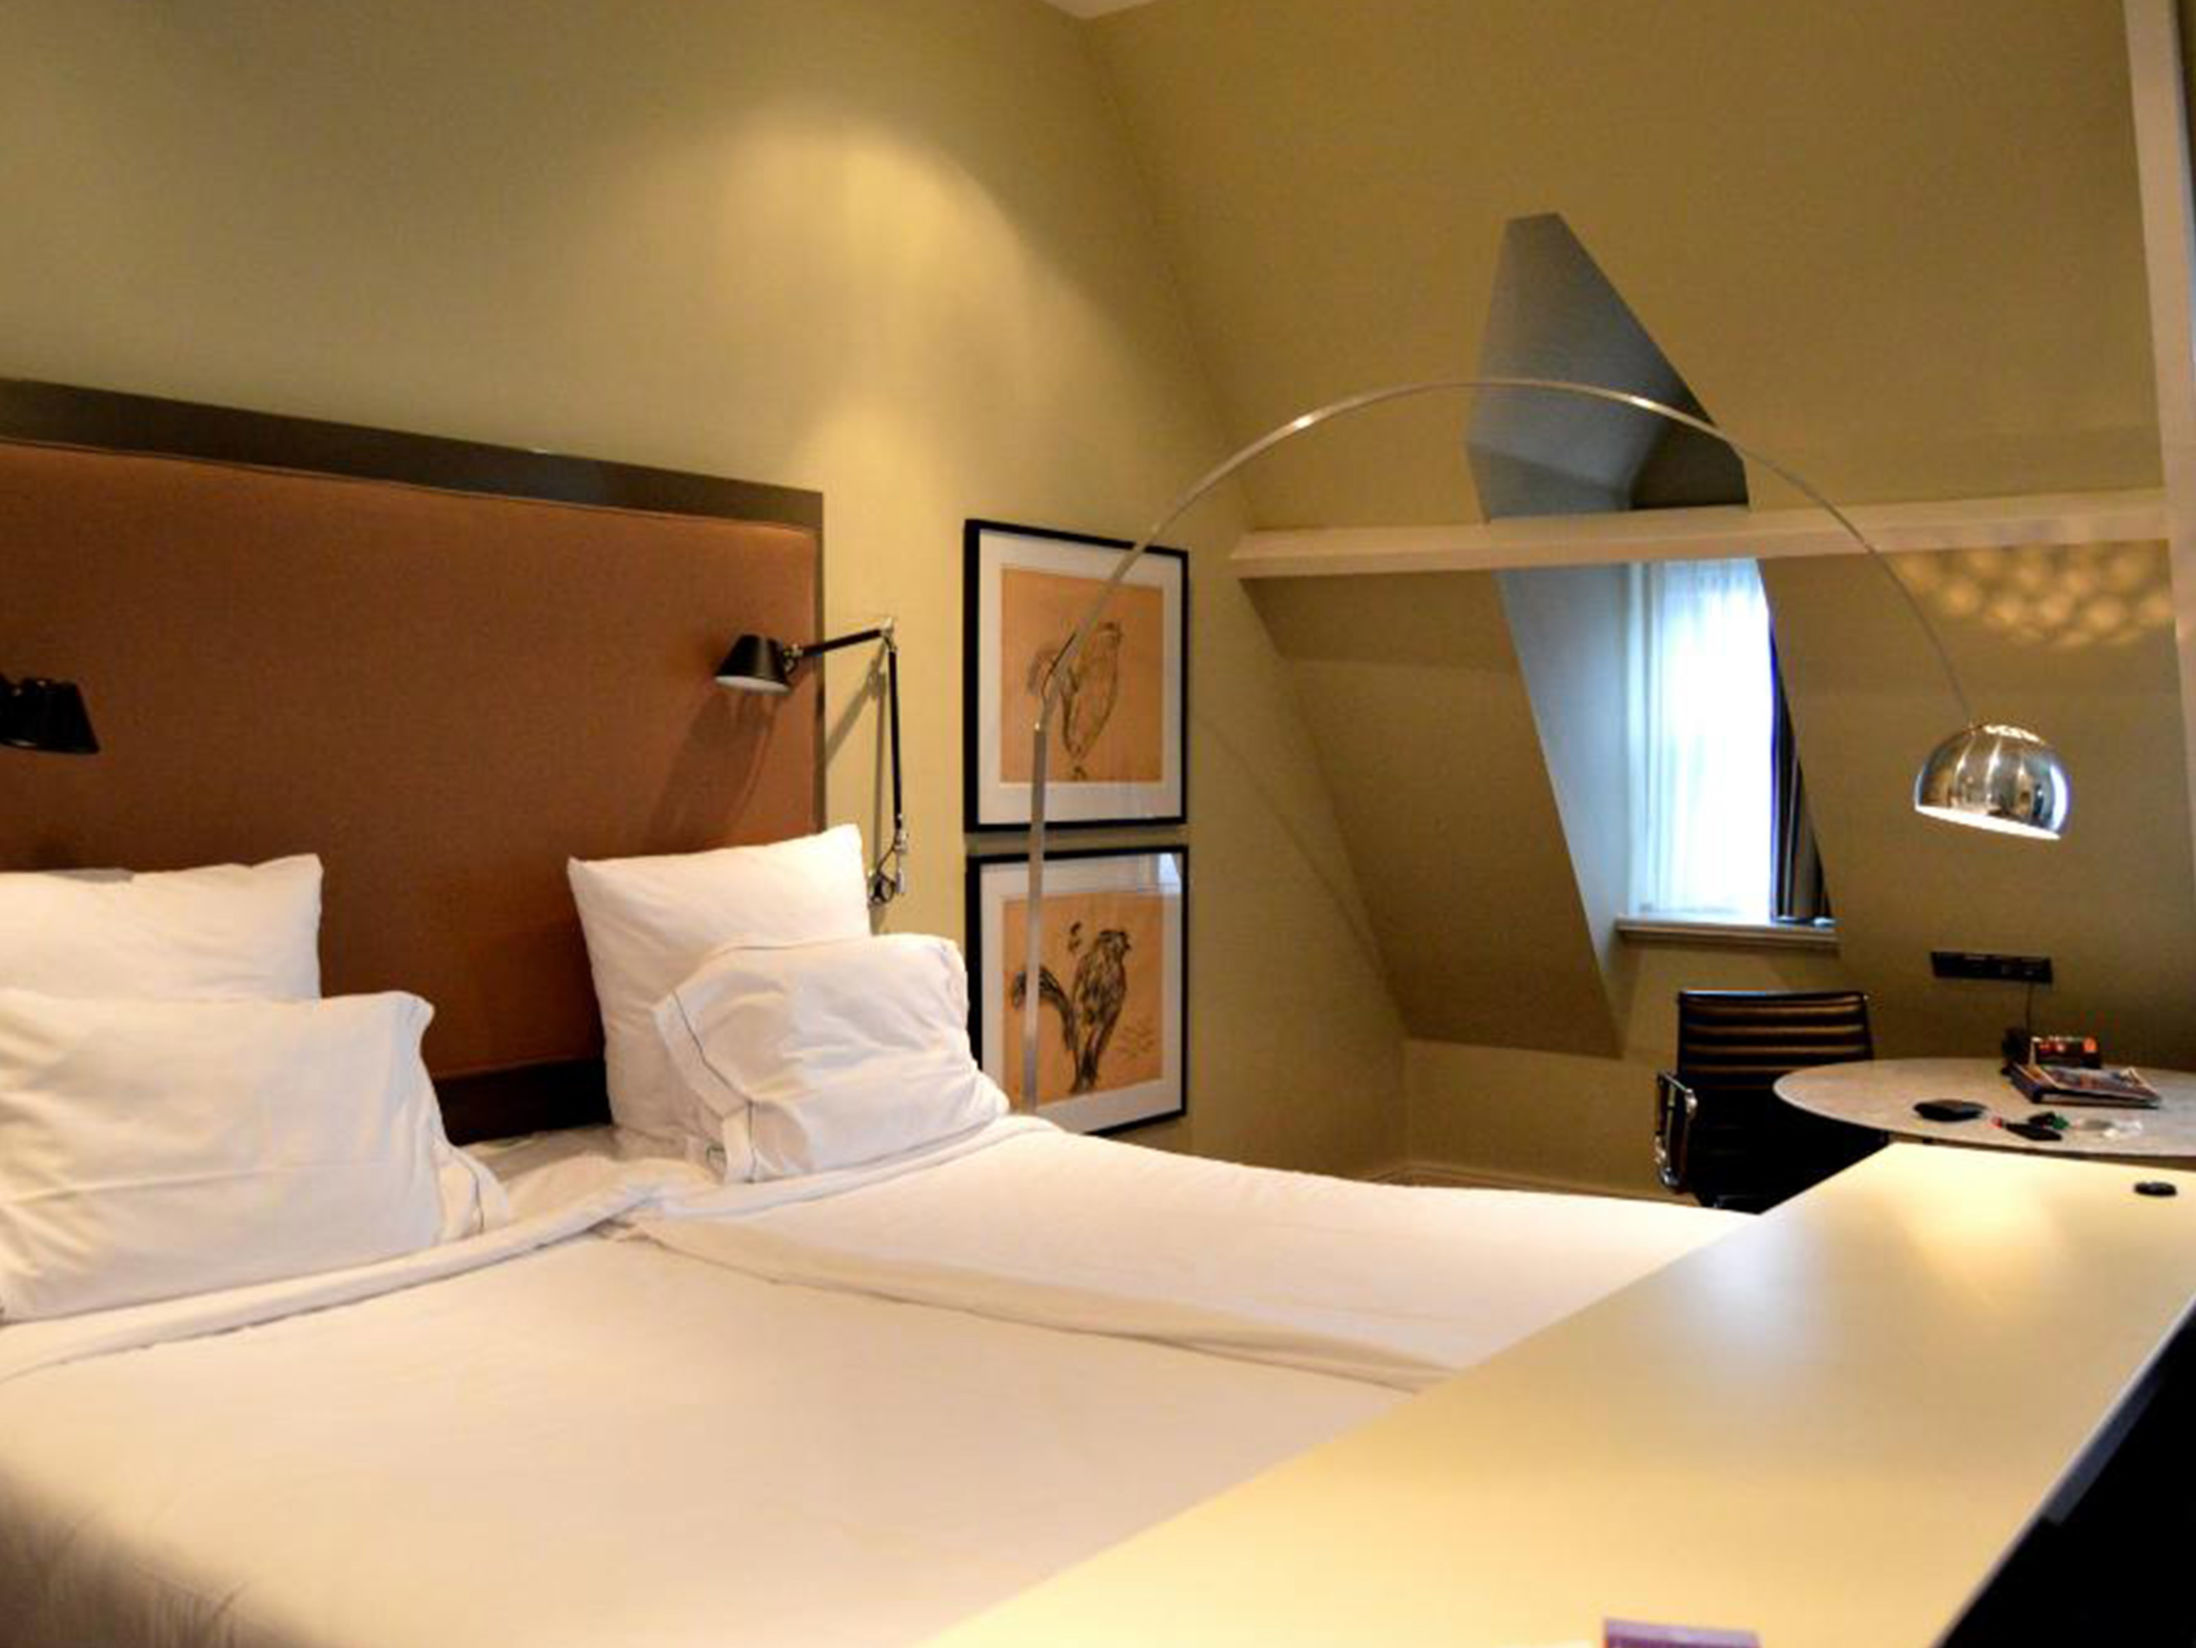 Best Hotels in Amsterdam - Hotel Roemer